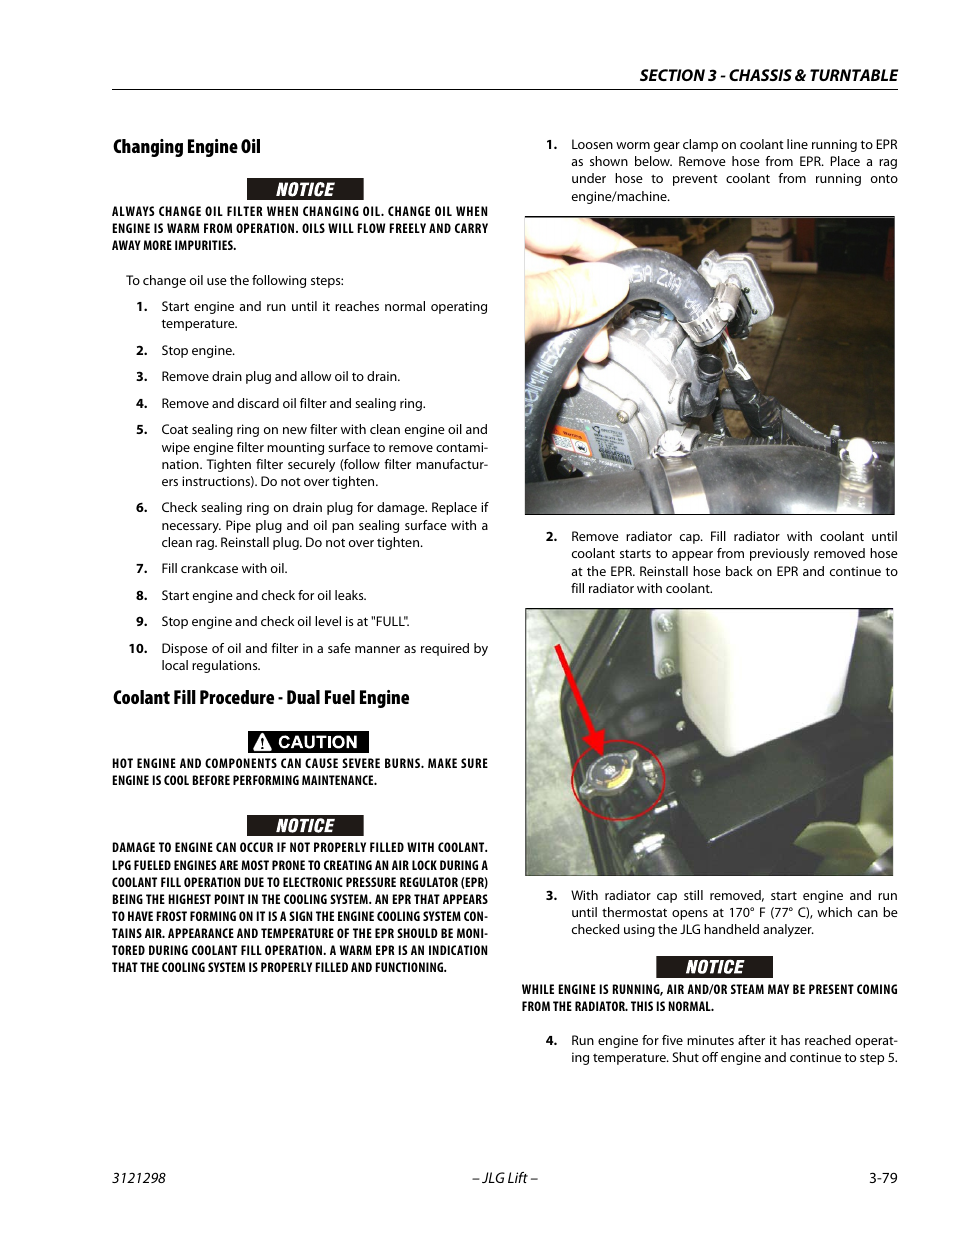 Changing engine oil, Coolant fill procedure - dual fuel engine | JLG 660SJ  Service Manual User Manual | Page 123 / 328